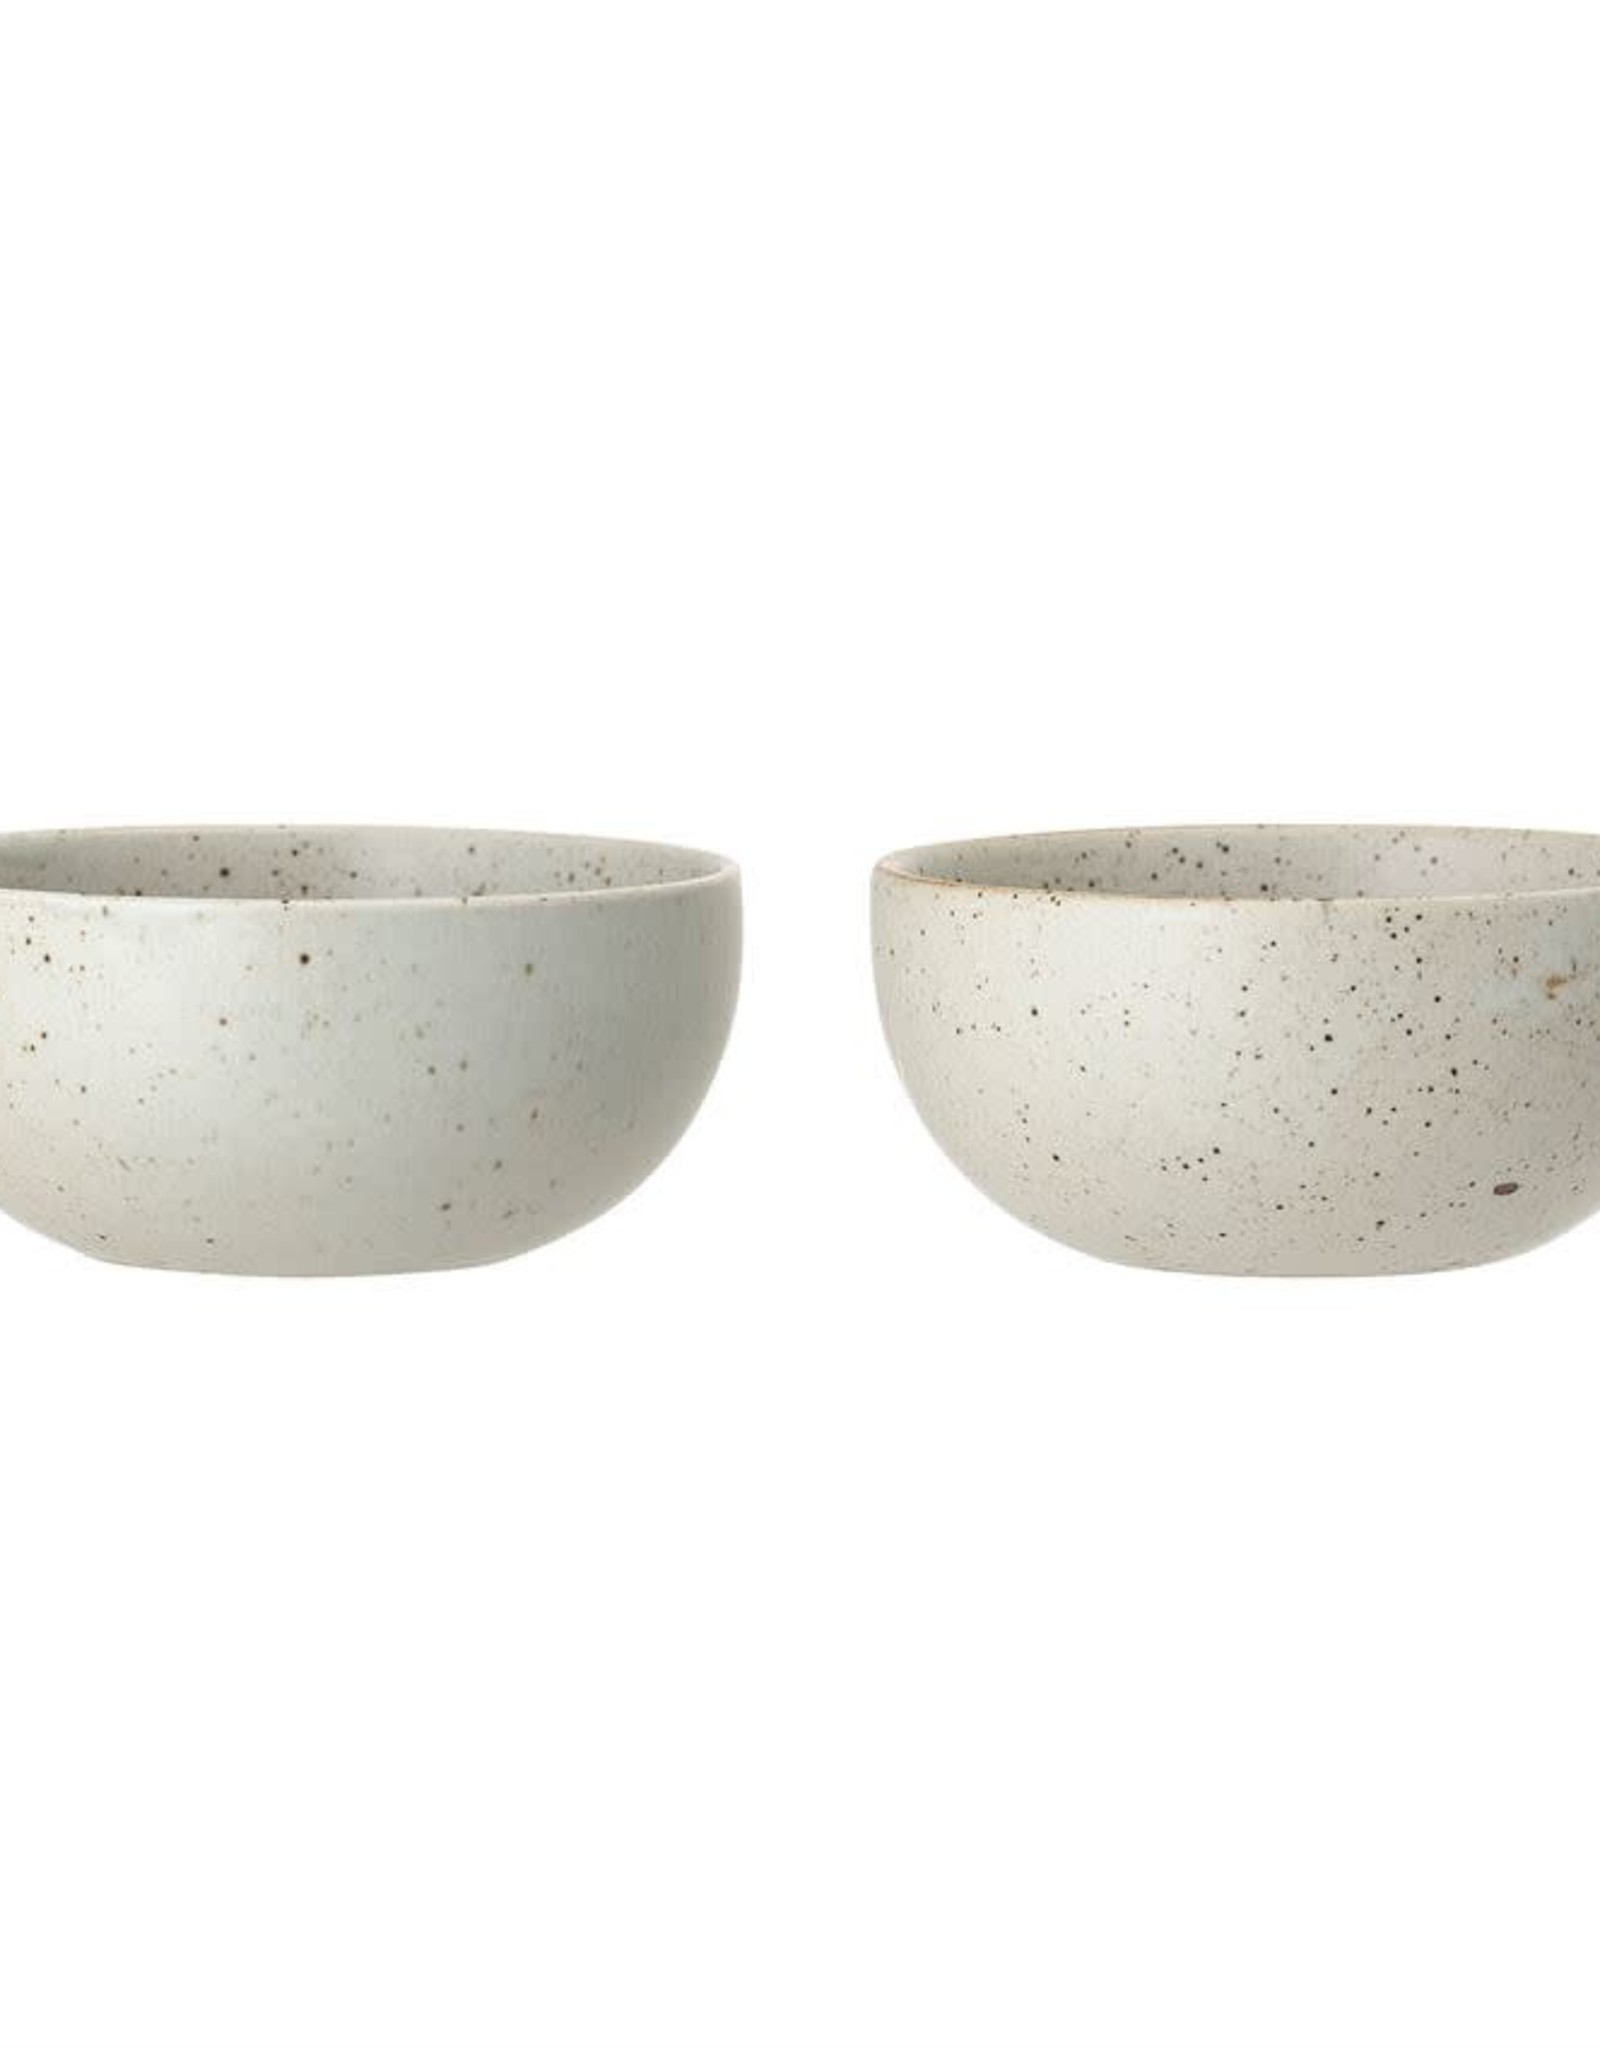 Stoneware Bowl - 5-3/4''Round - 2 colors - Each one will vary